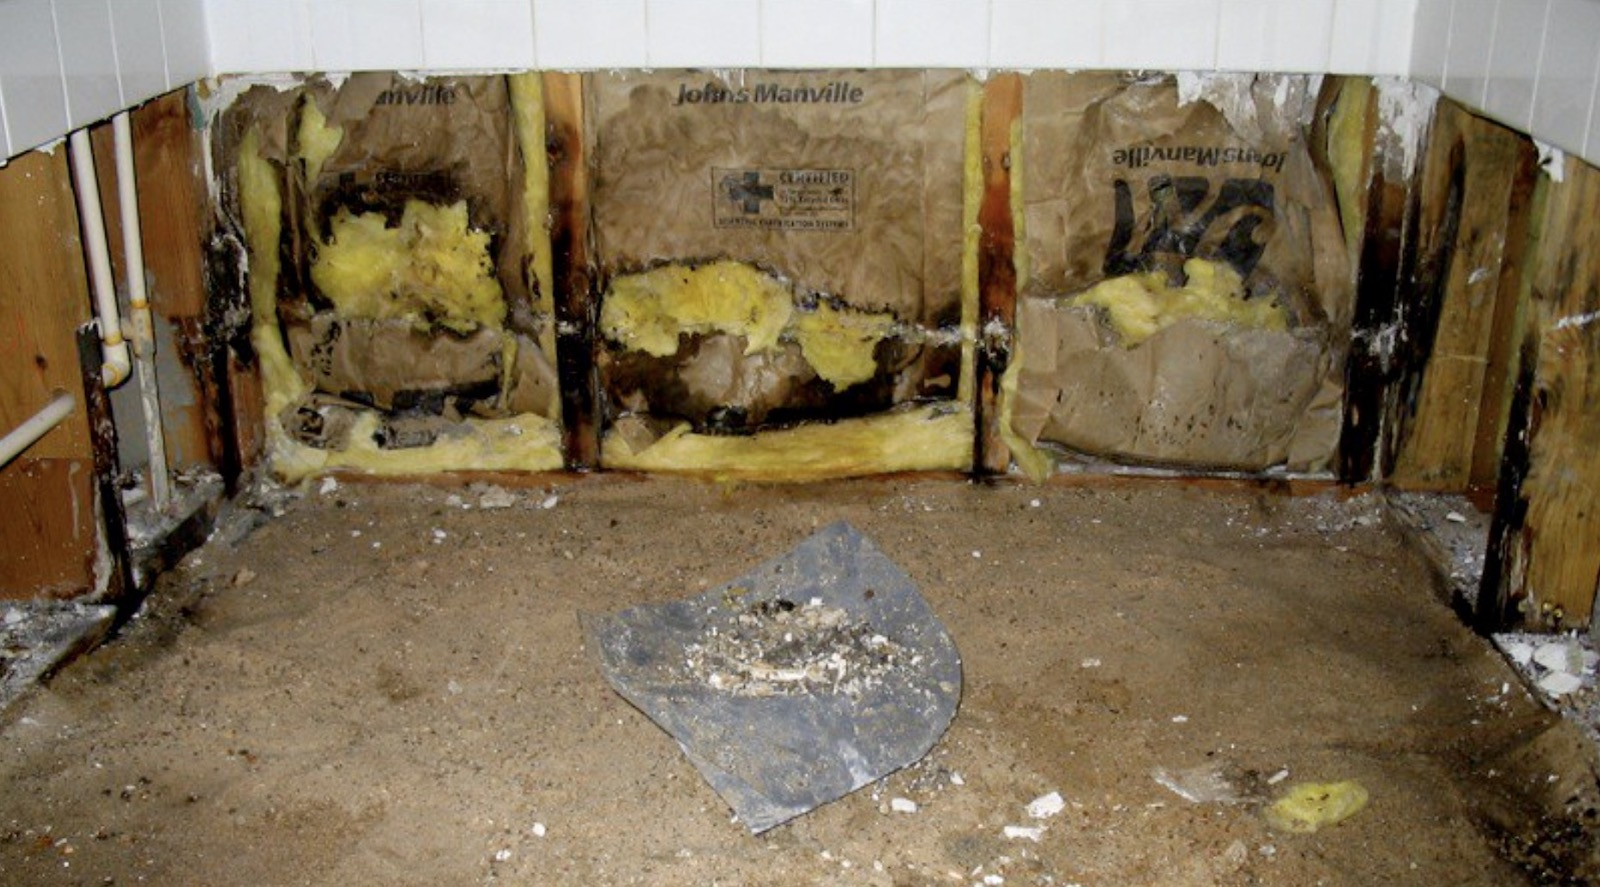 Mold remediation is needed for the mold in this home's walls and framing